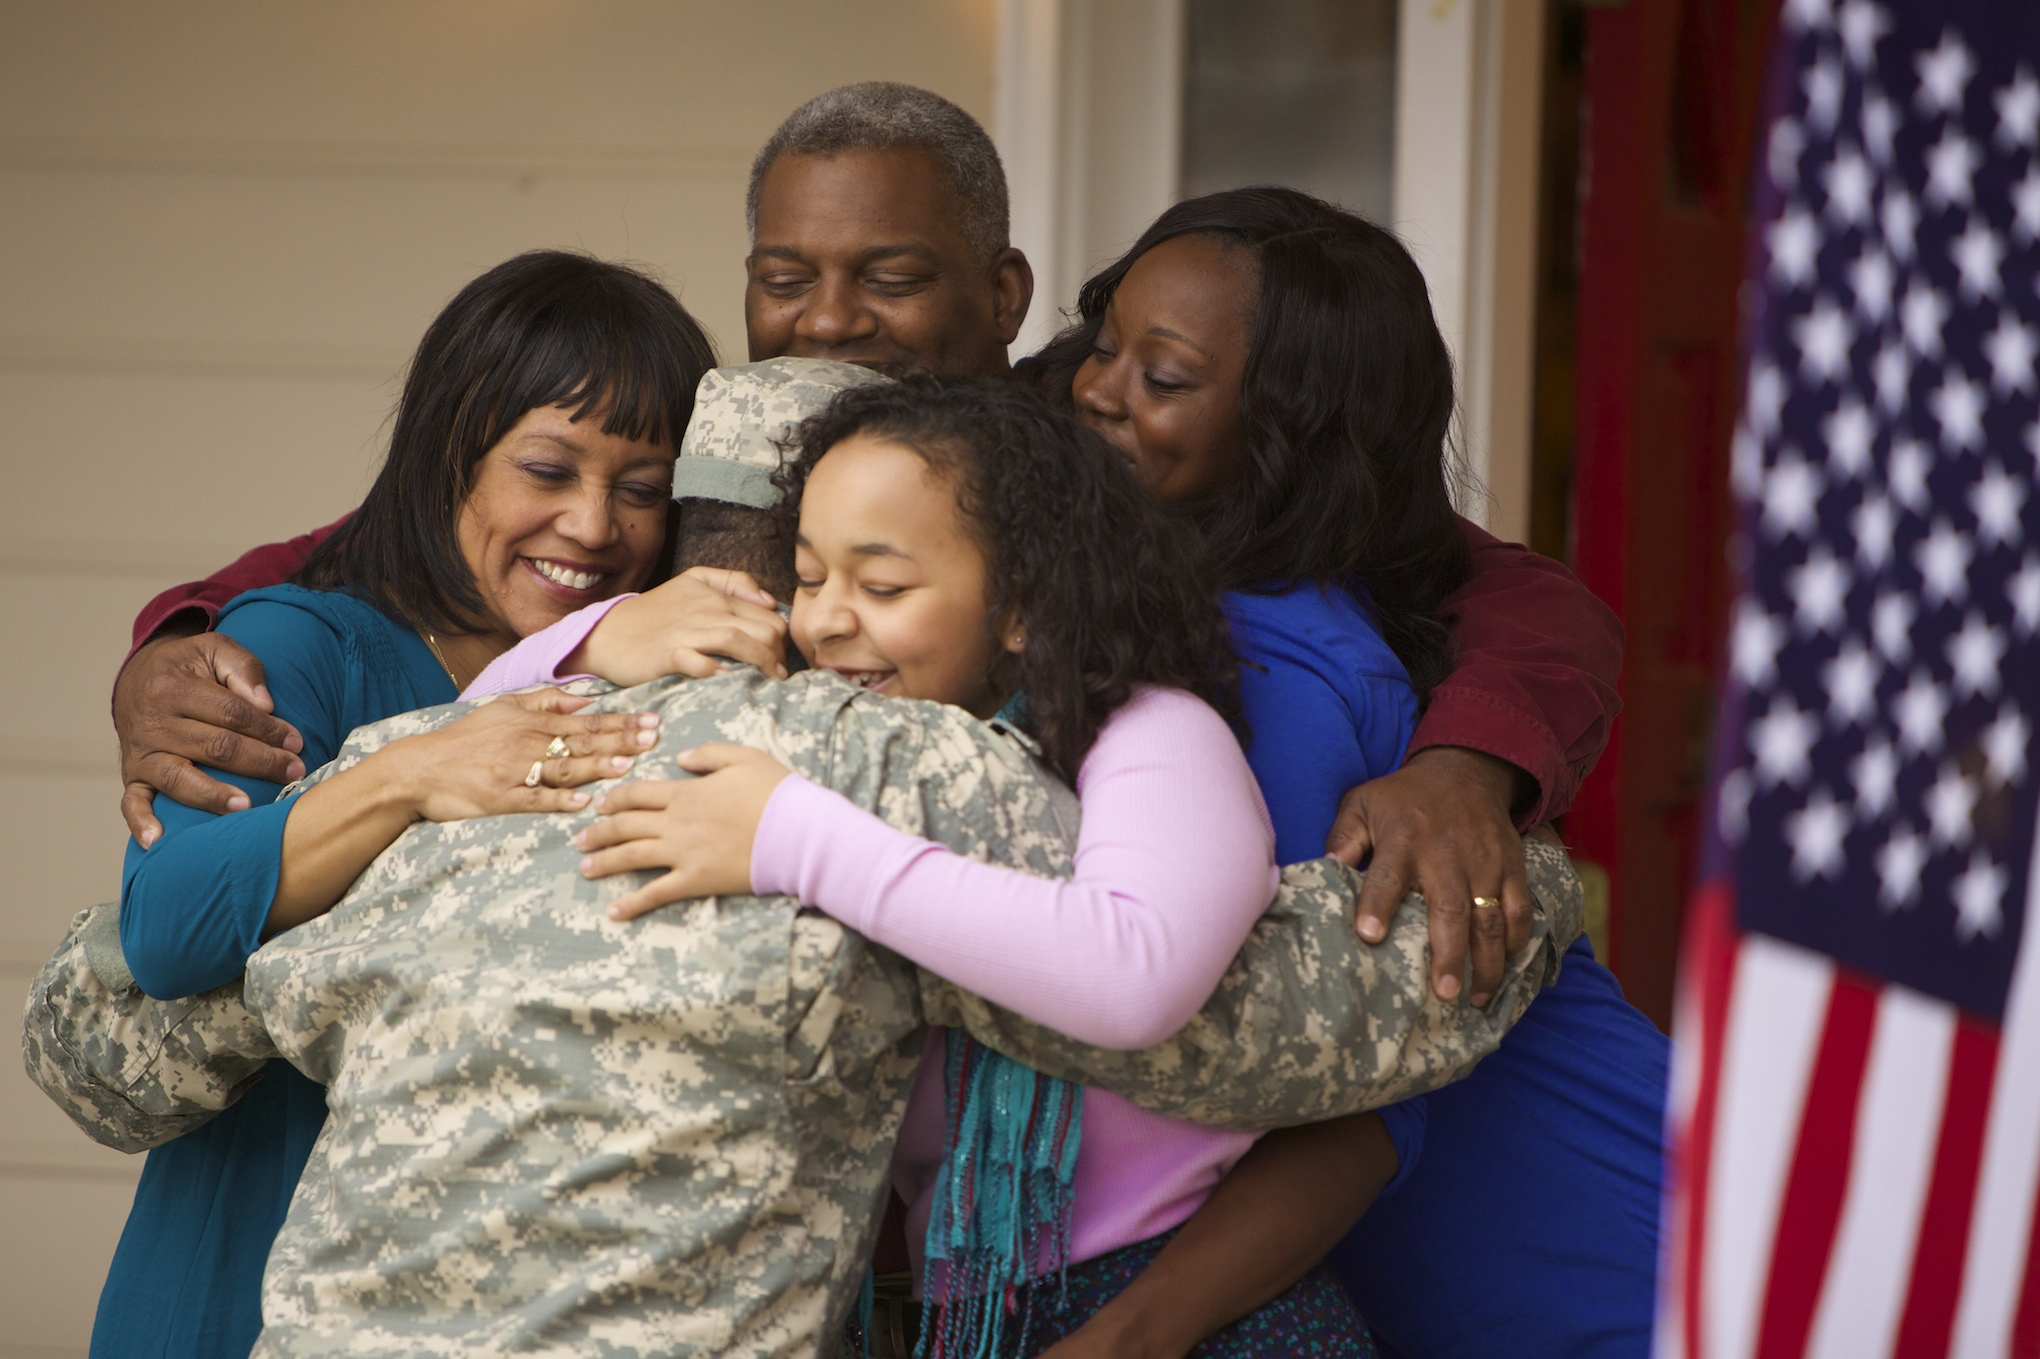 A Serviceman hugs his family on the front porch as he returns home.